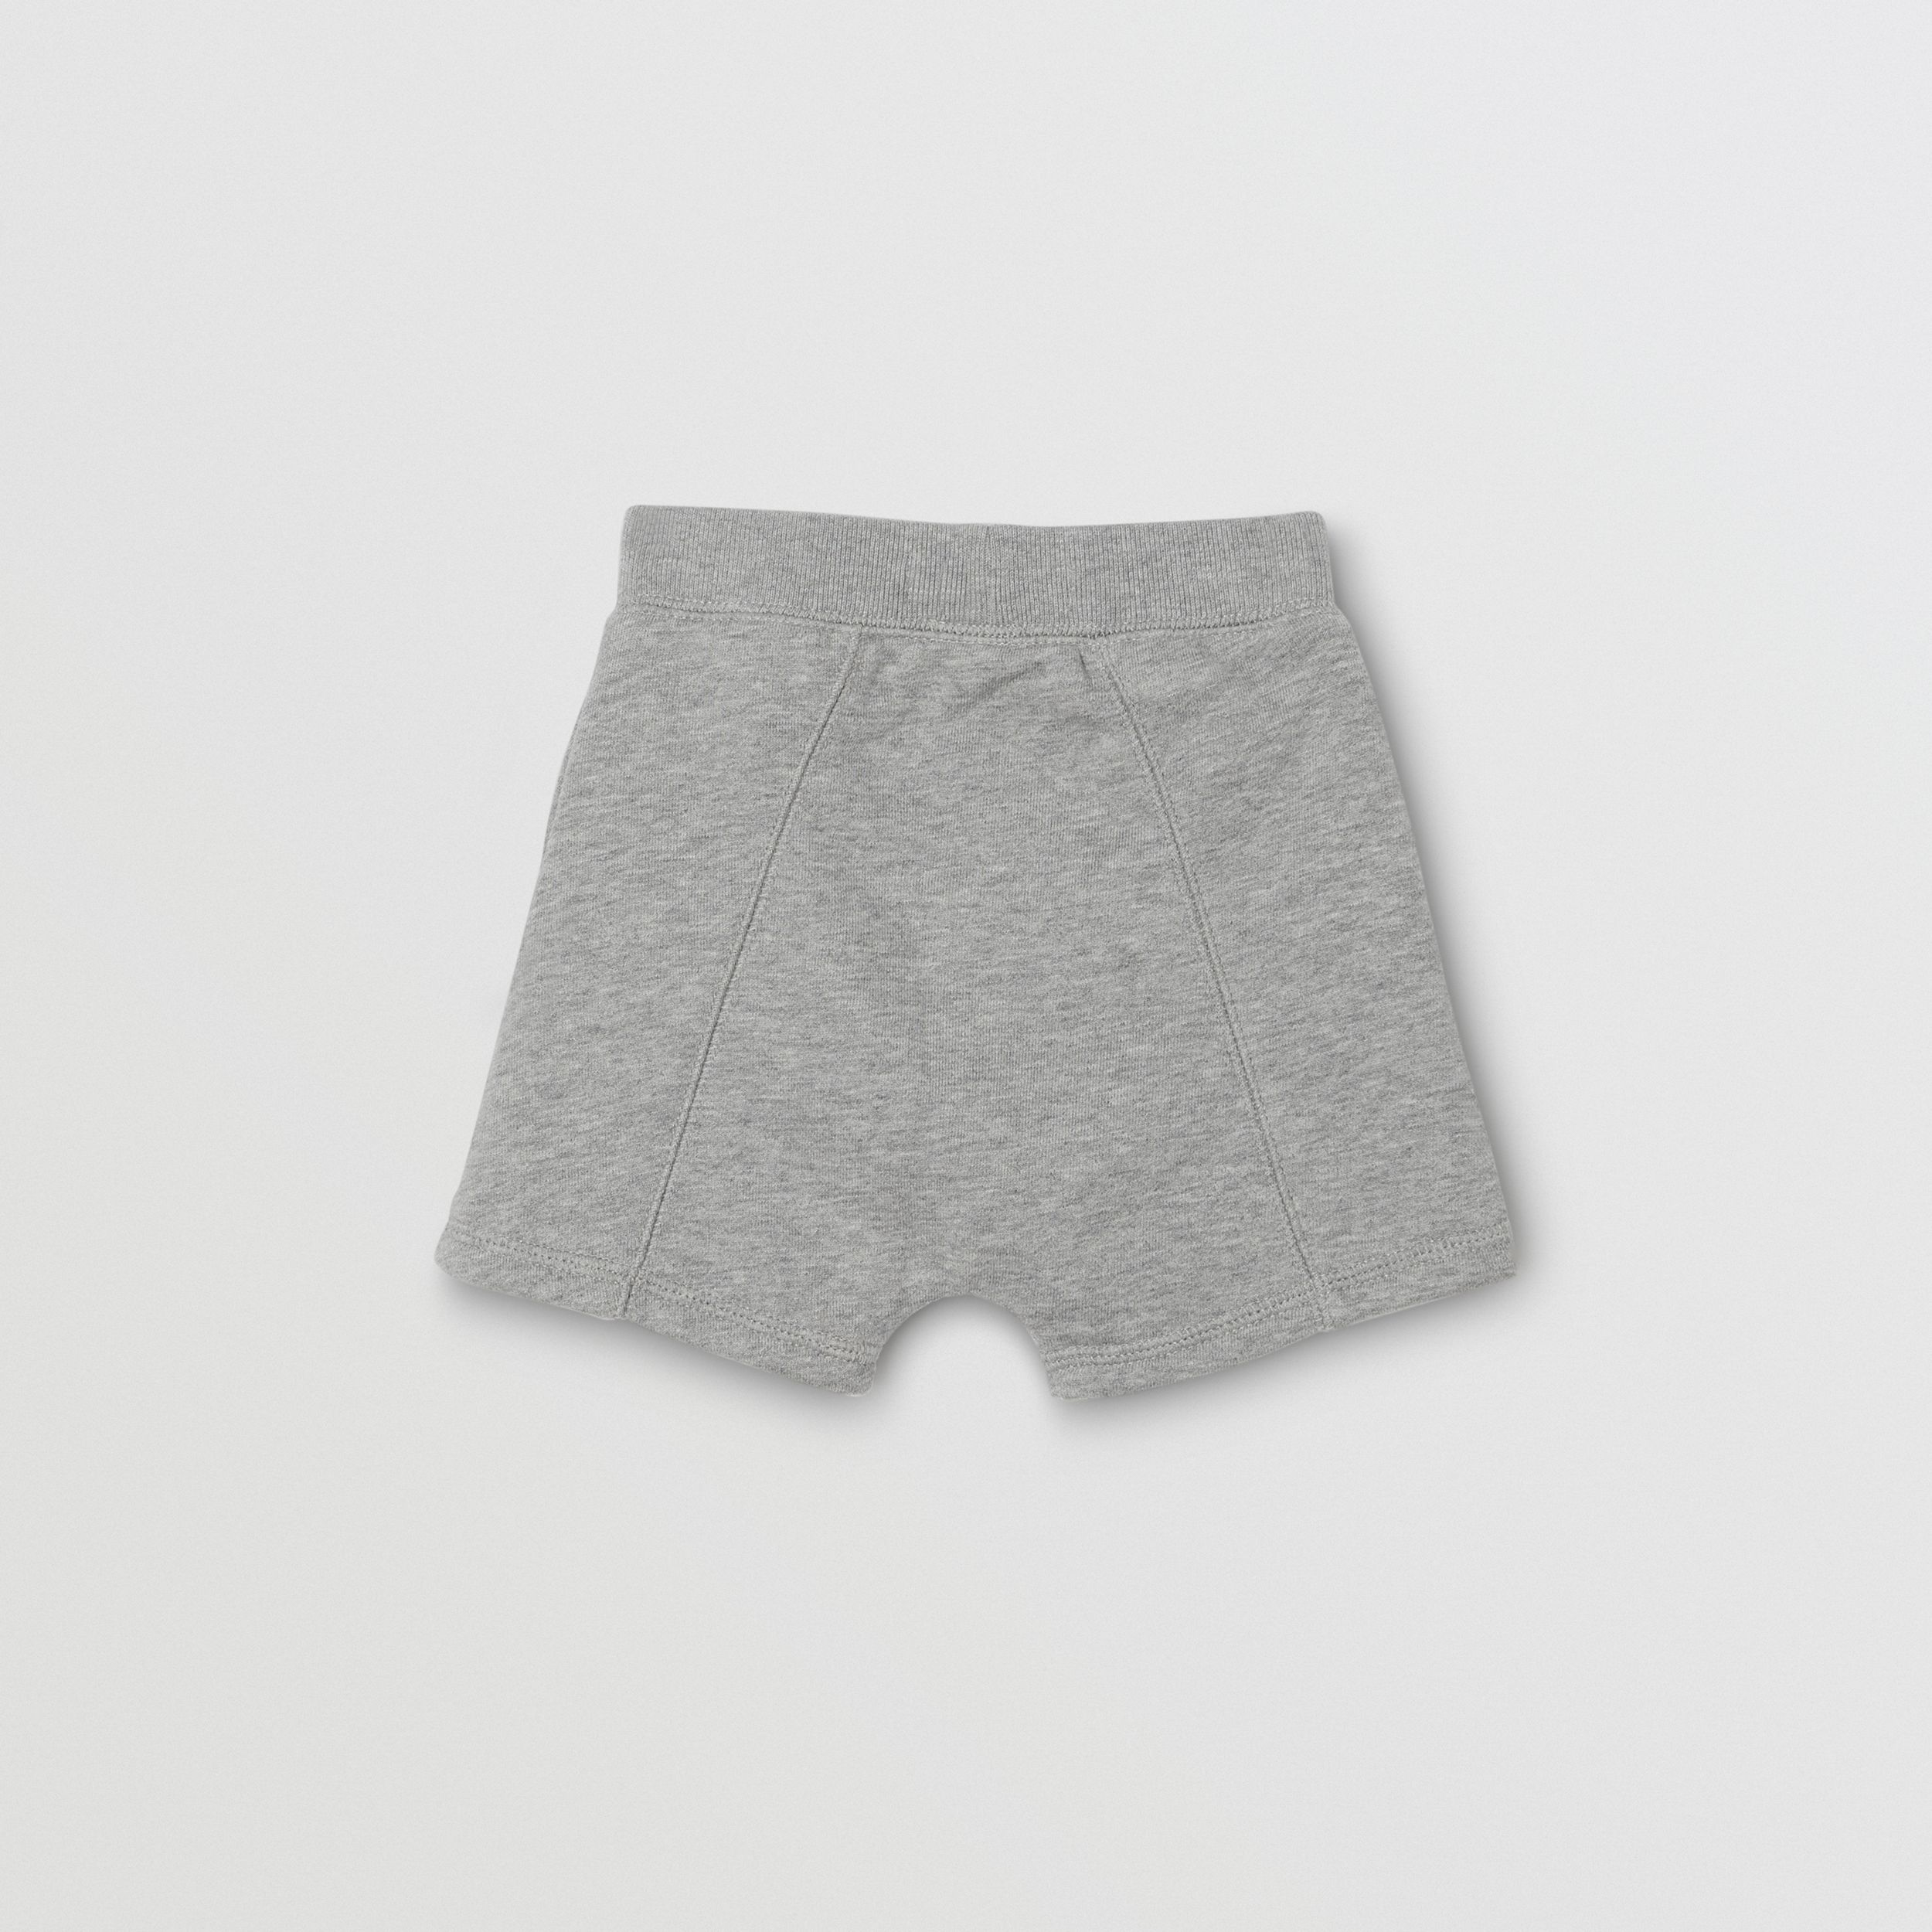 Logo Detail Cotton Drawcord Shorts in Grey Melange | Burberry Australia - 4